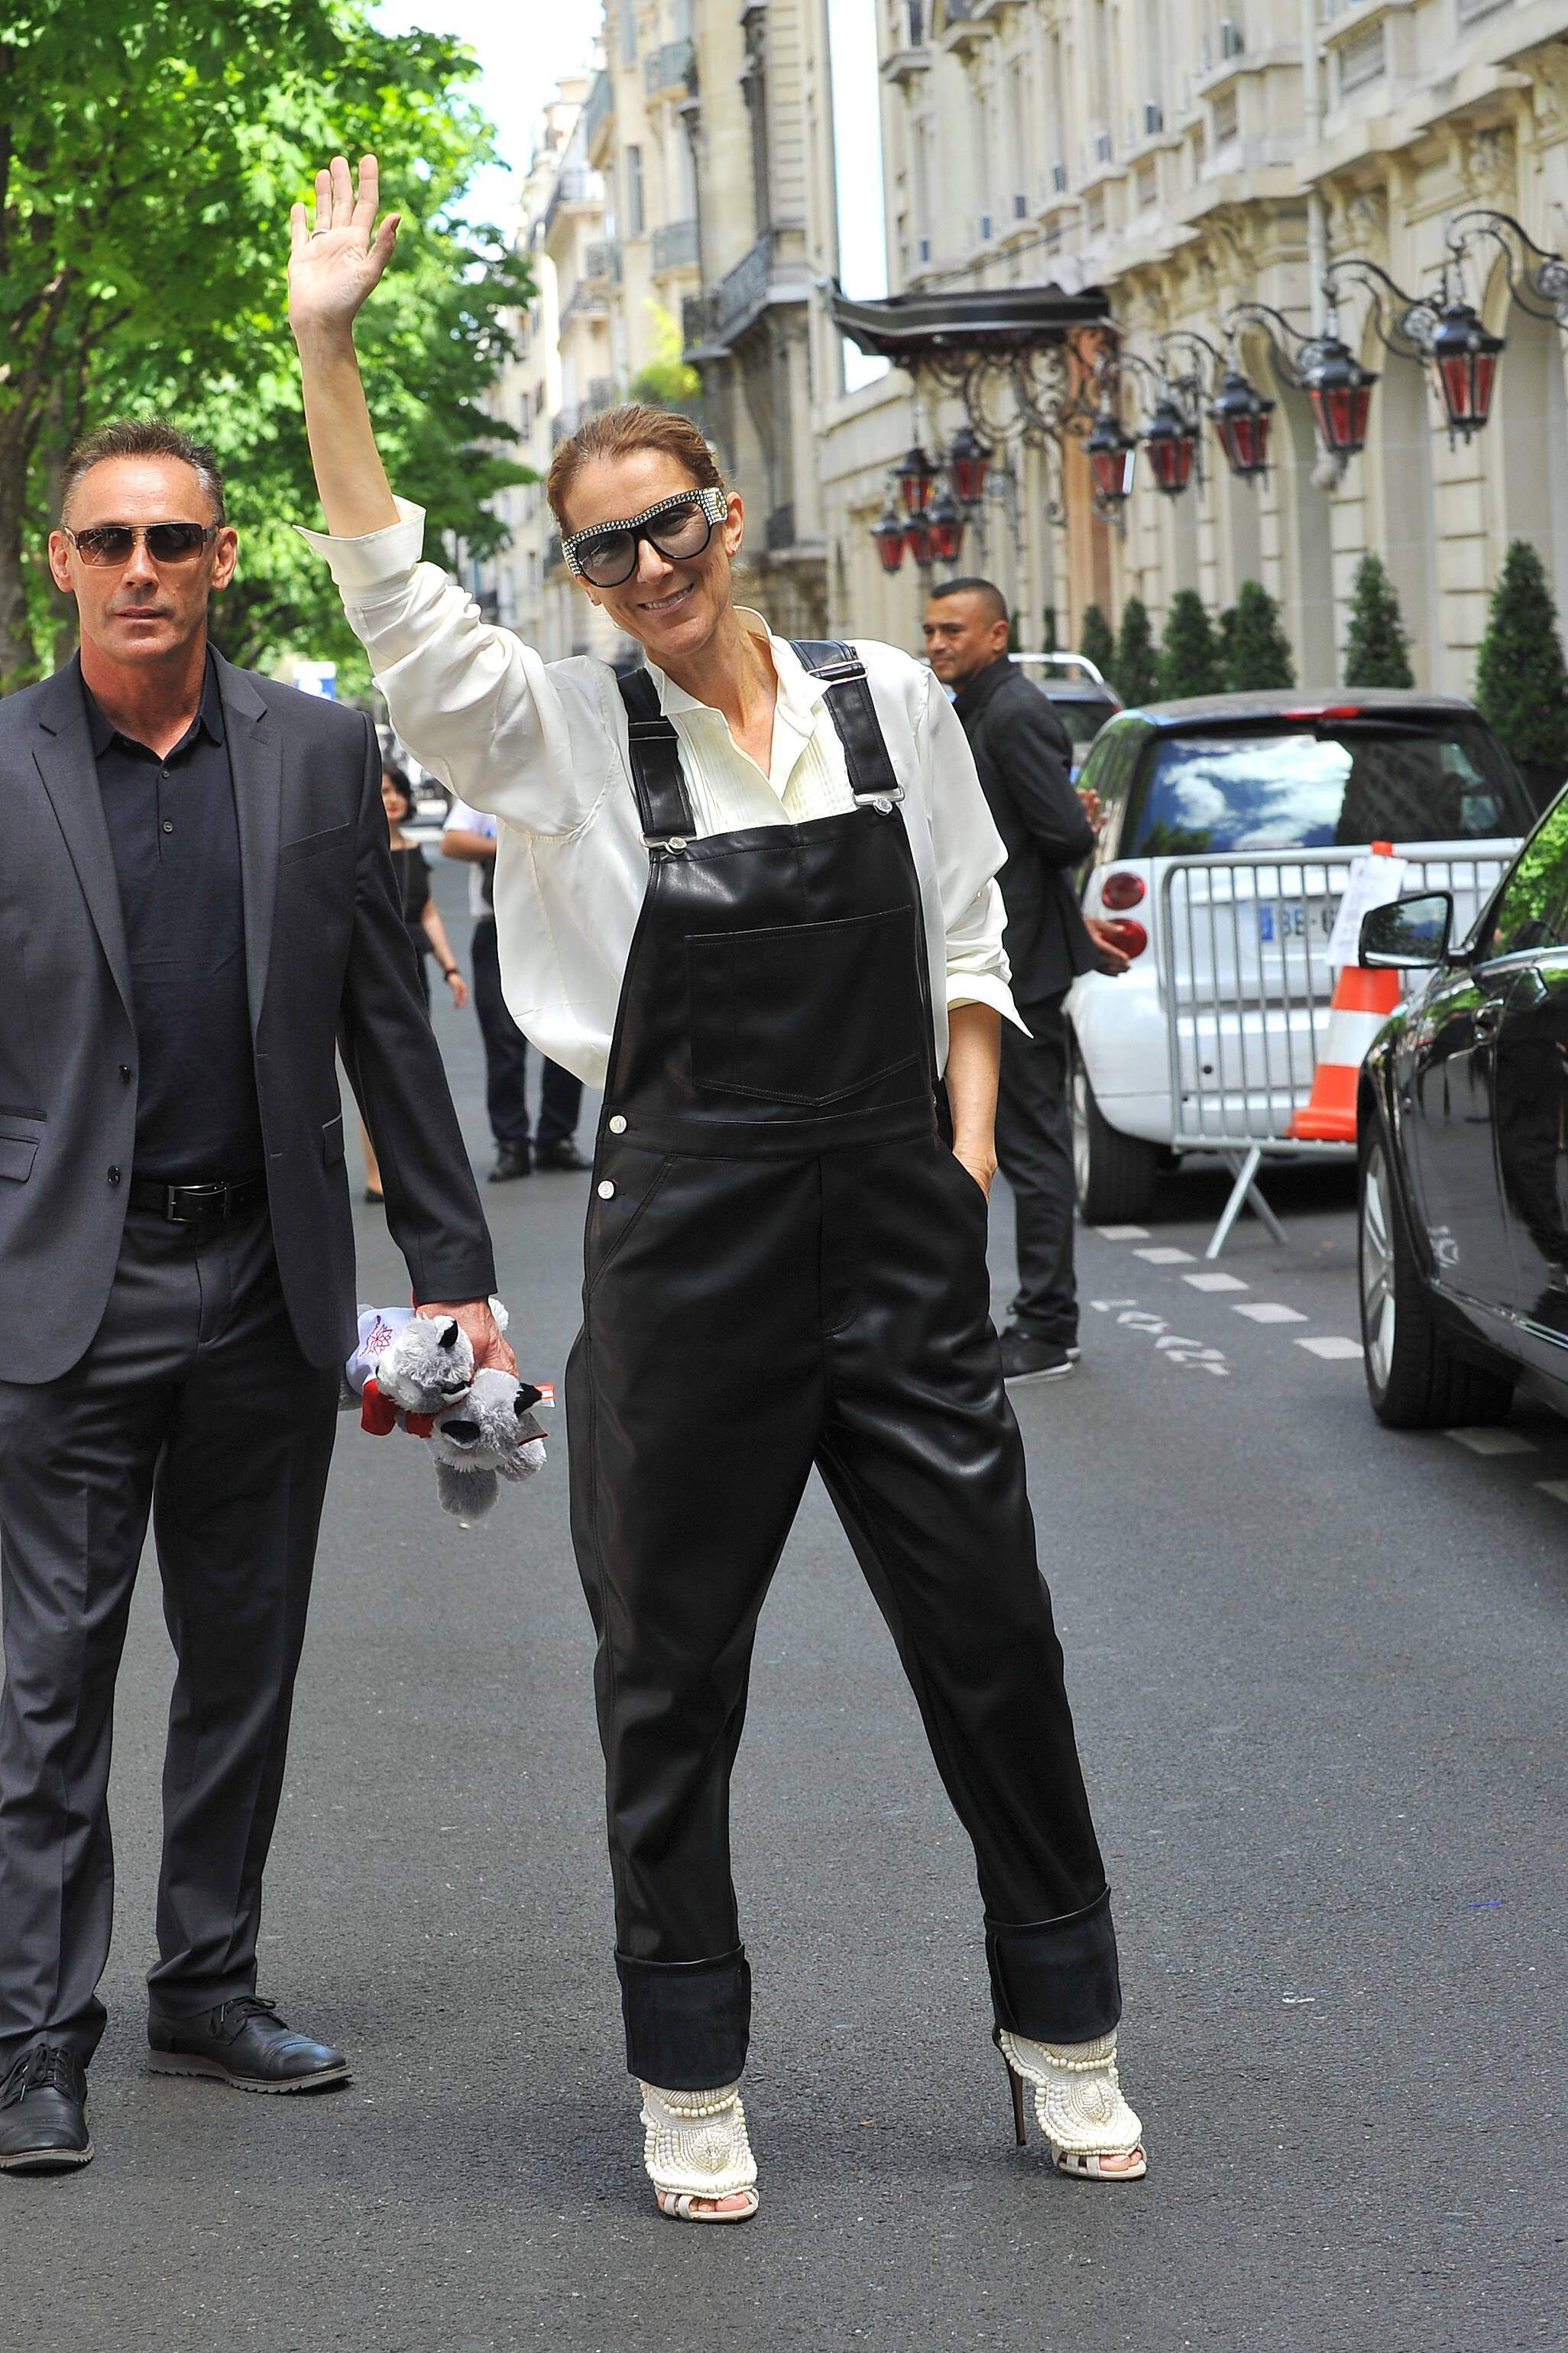 Celine strahlt in Leder-Latzhose in Paris. (Quelle: imago)